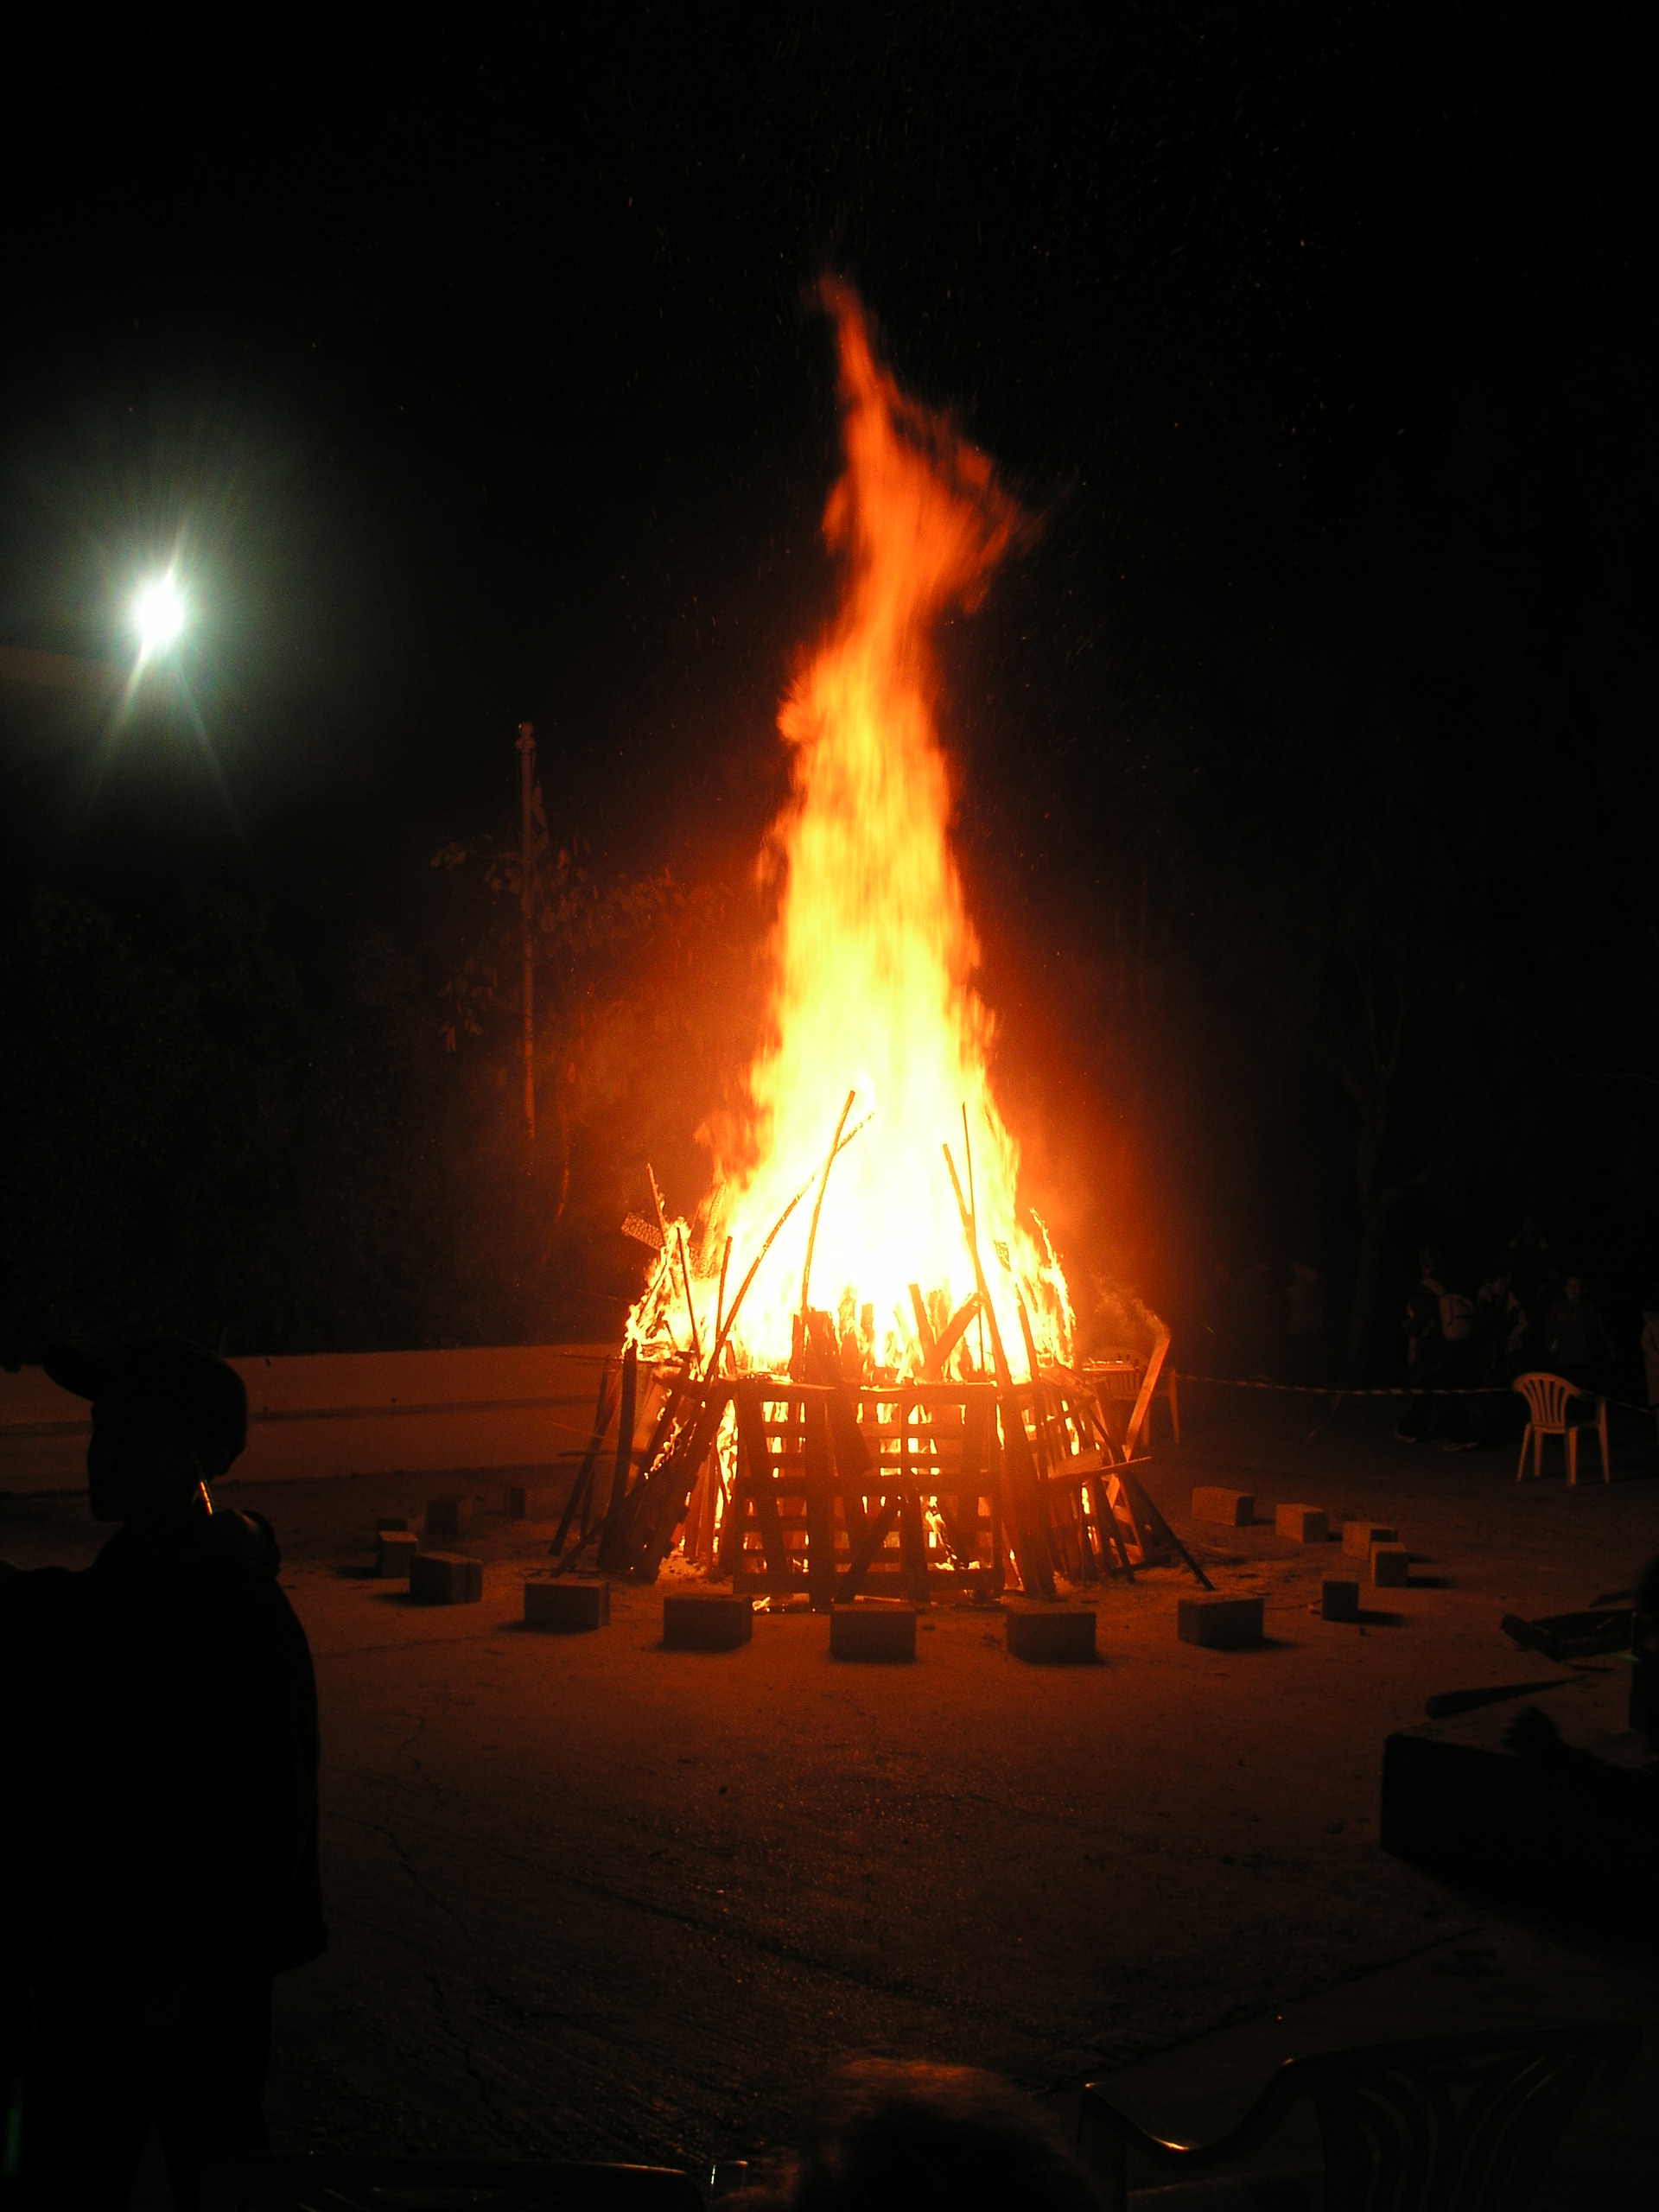 Bonfire Wallpapers High Quality Download Free